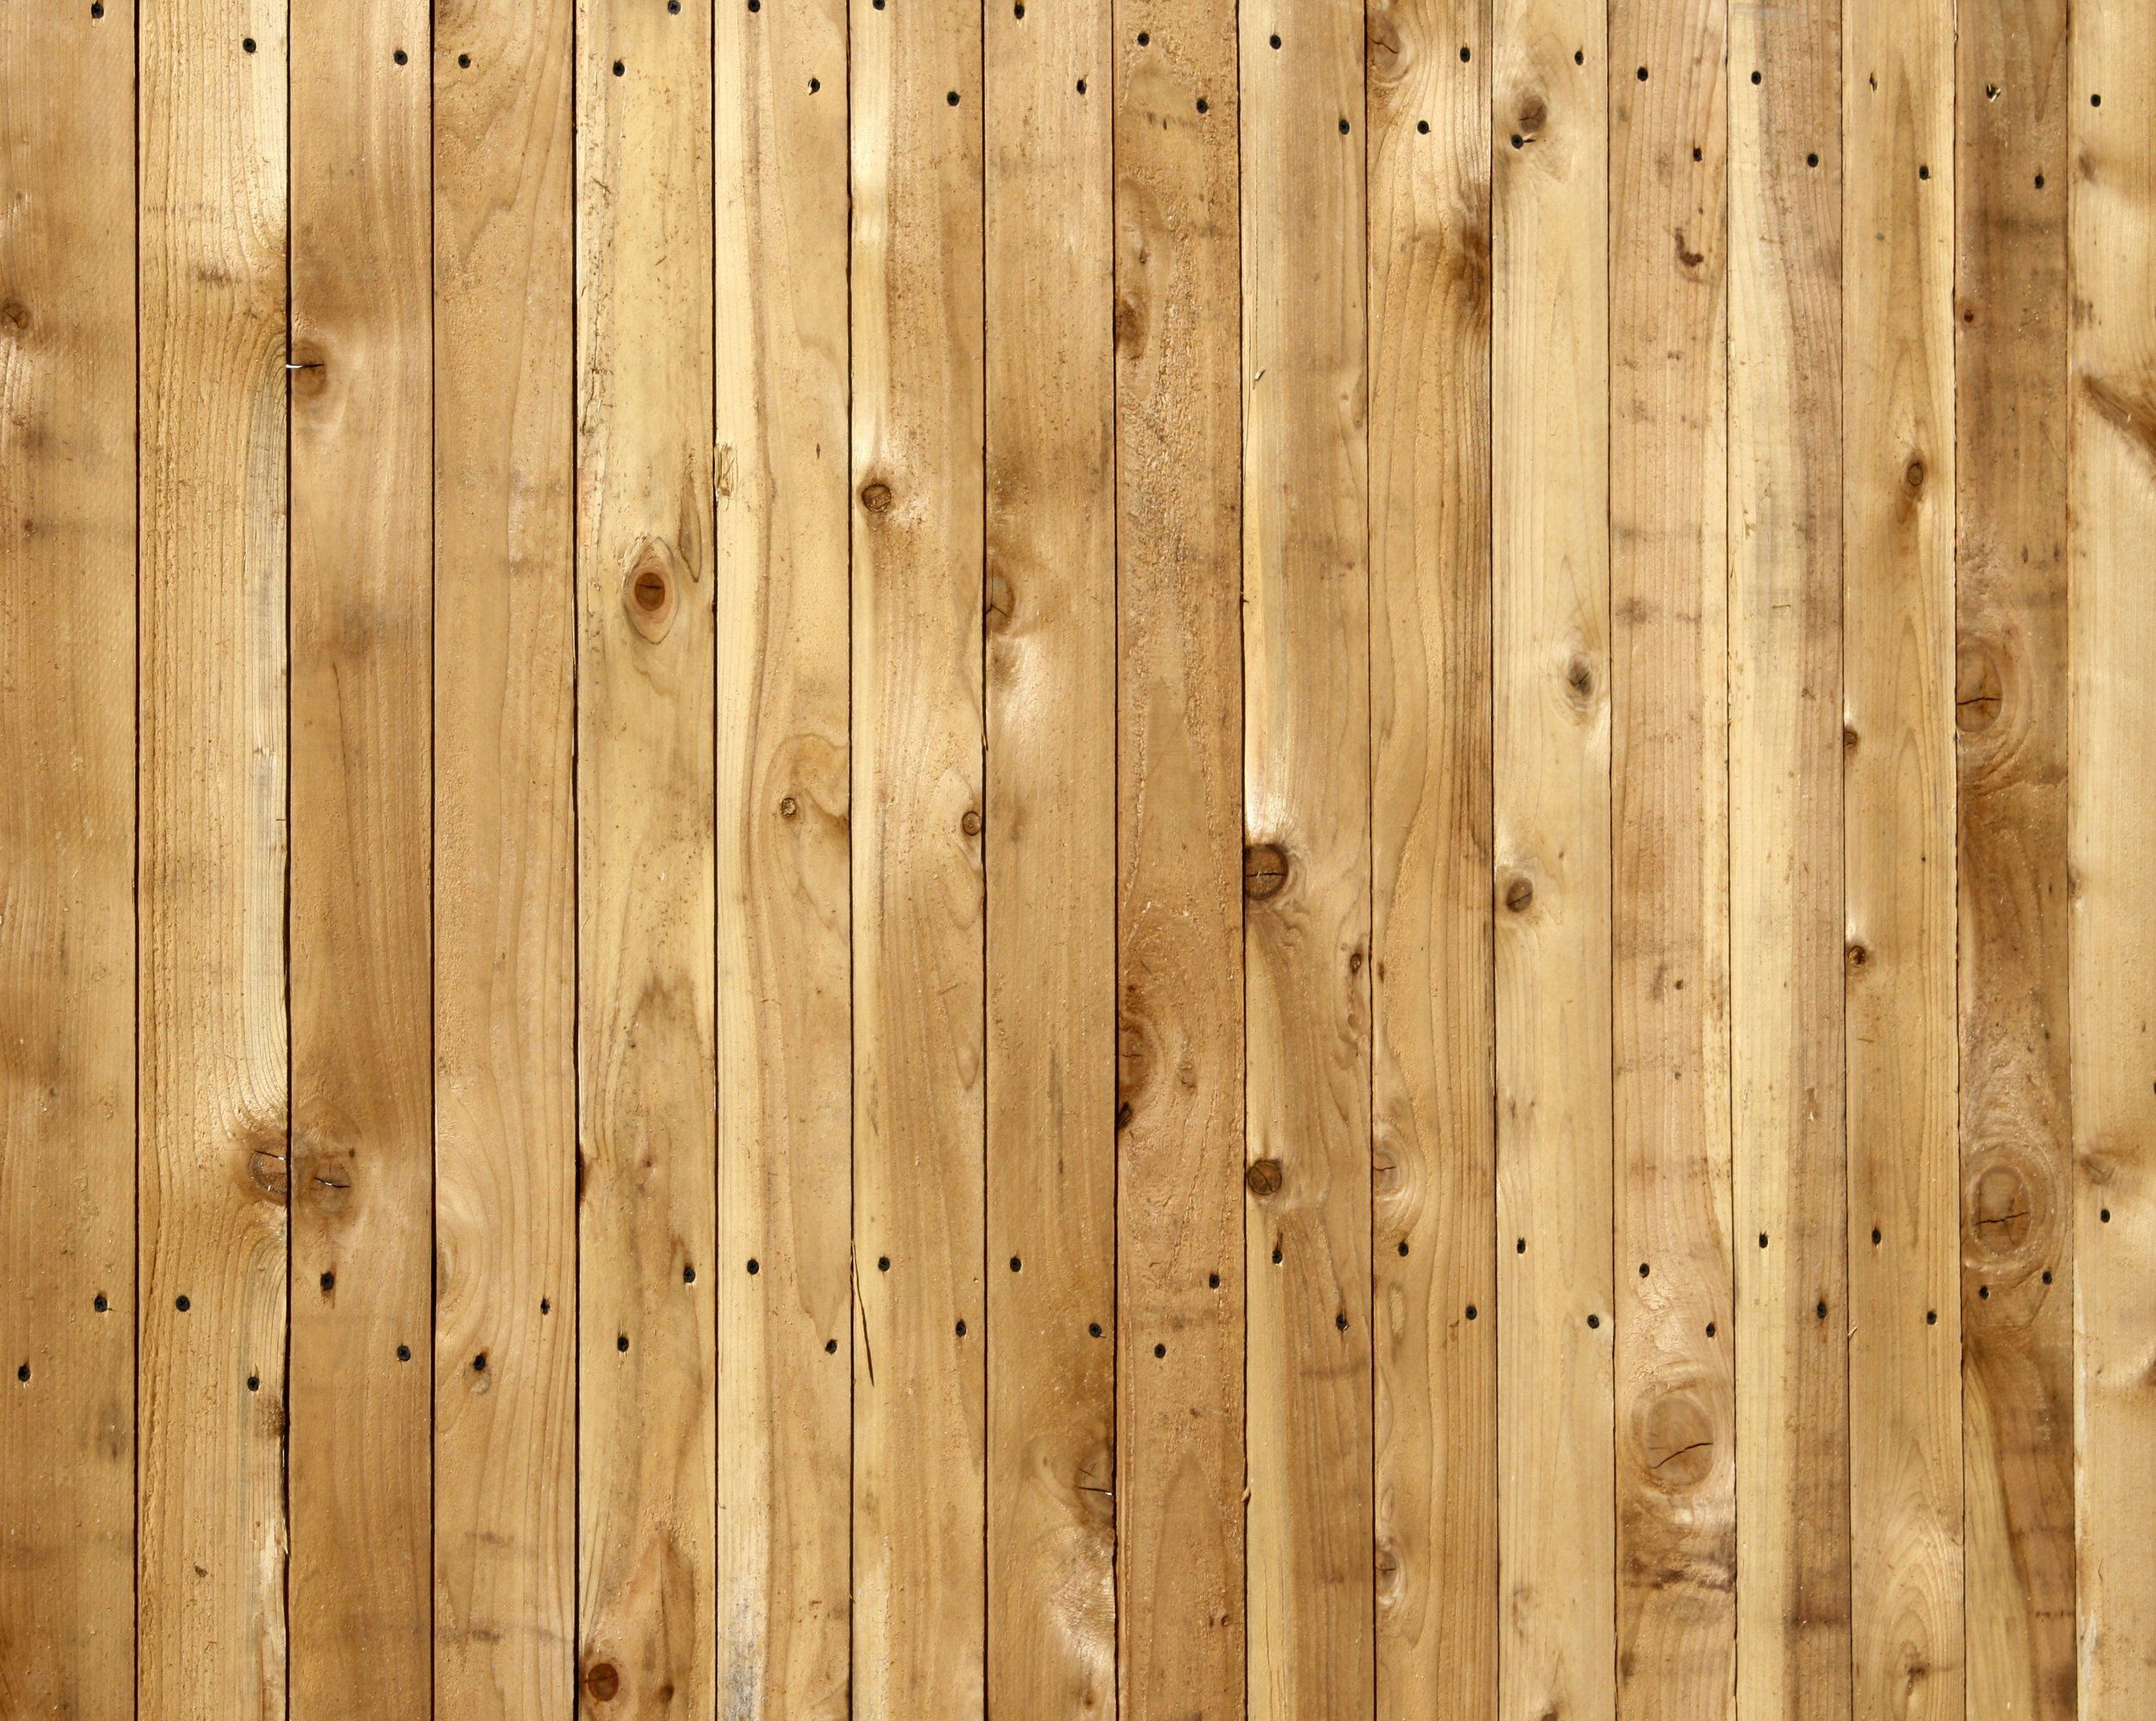 30 amazing free wood texture backgrounds textwood pinterest 30 amazing free wood texture backgrounds voltagebd Gallery